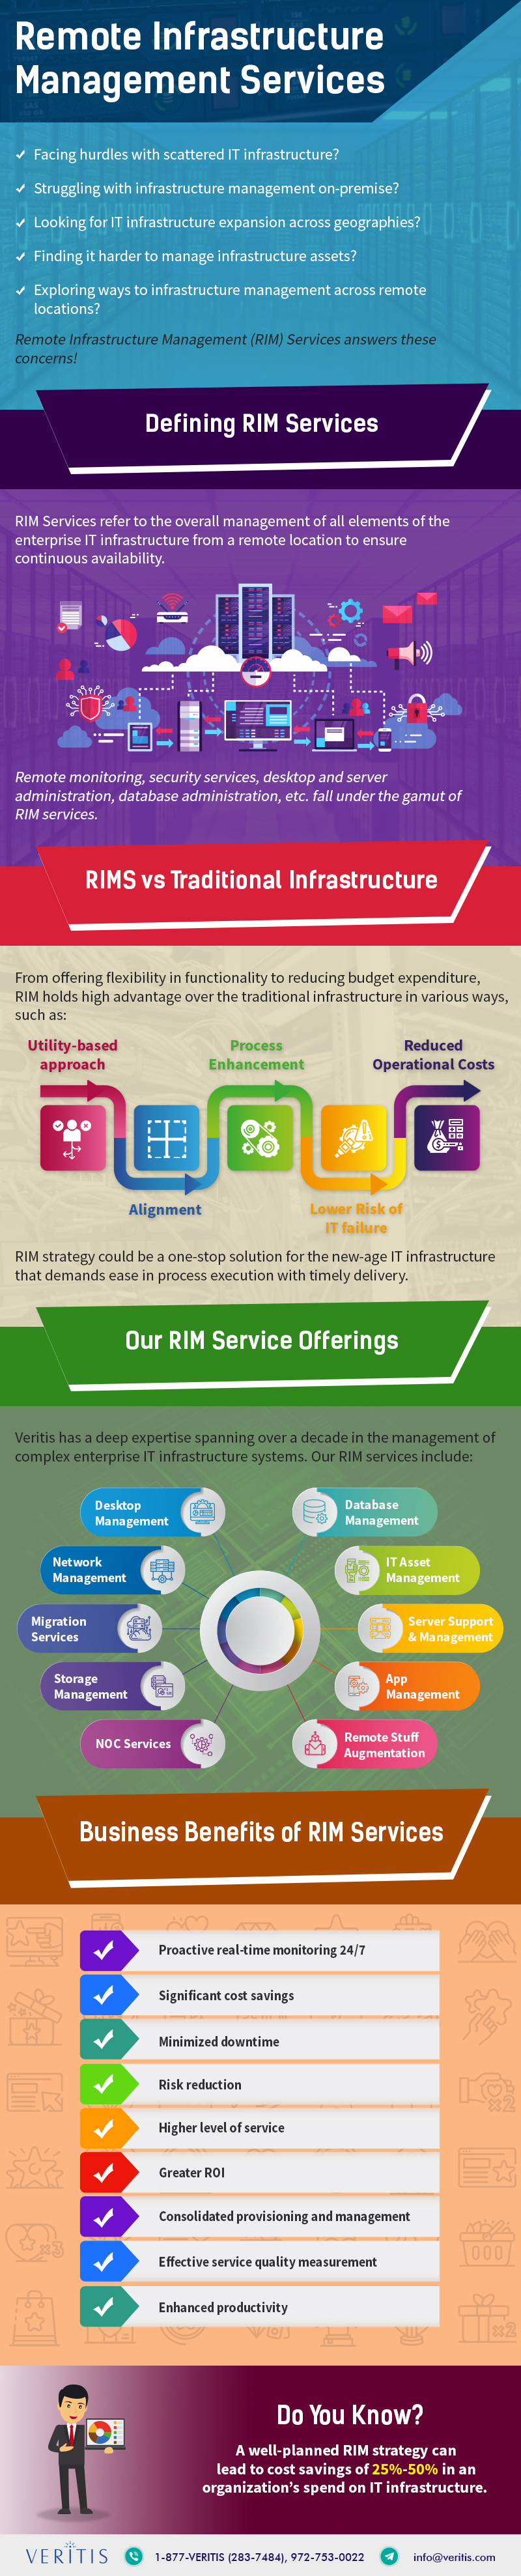 Remote Infrastructure Management Services (RIMS) - Infographic